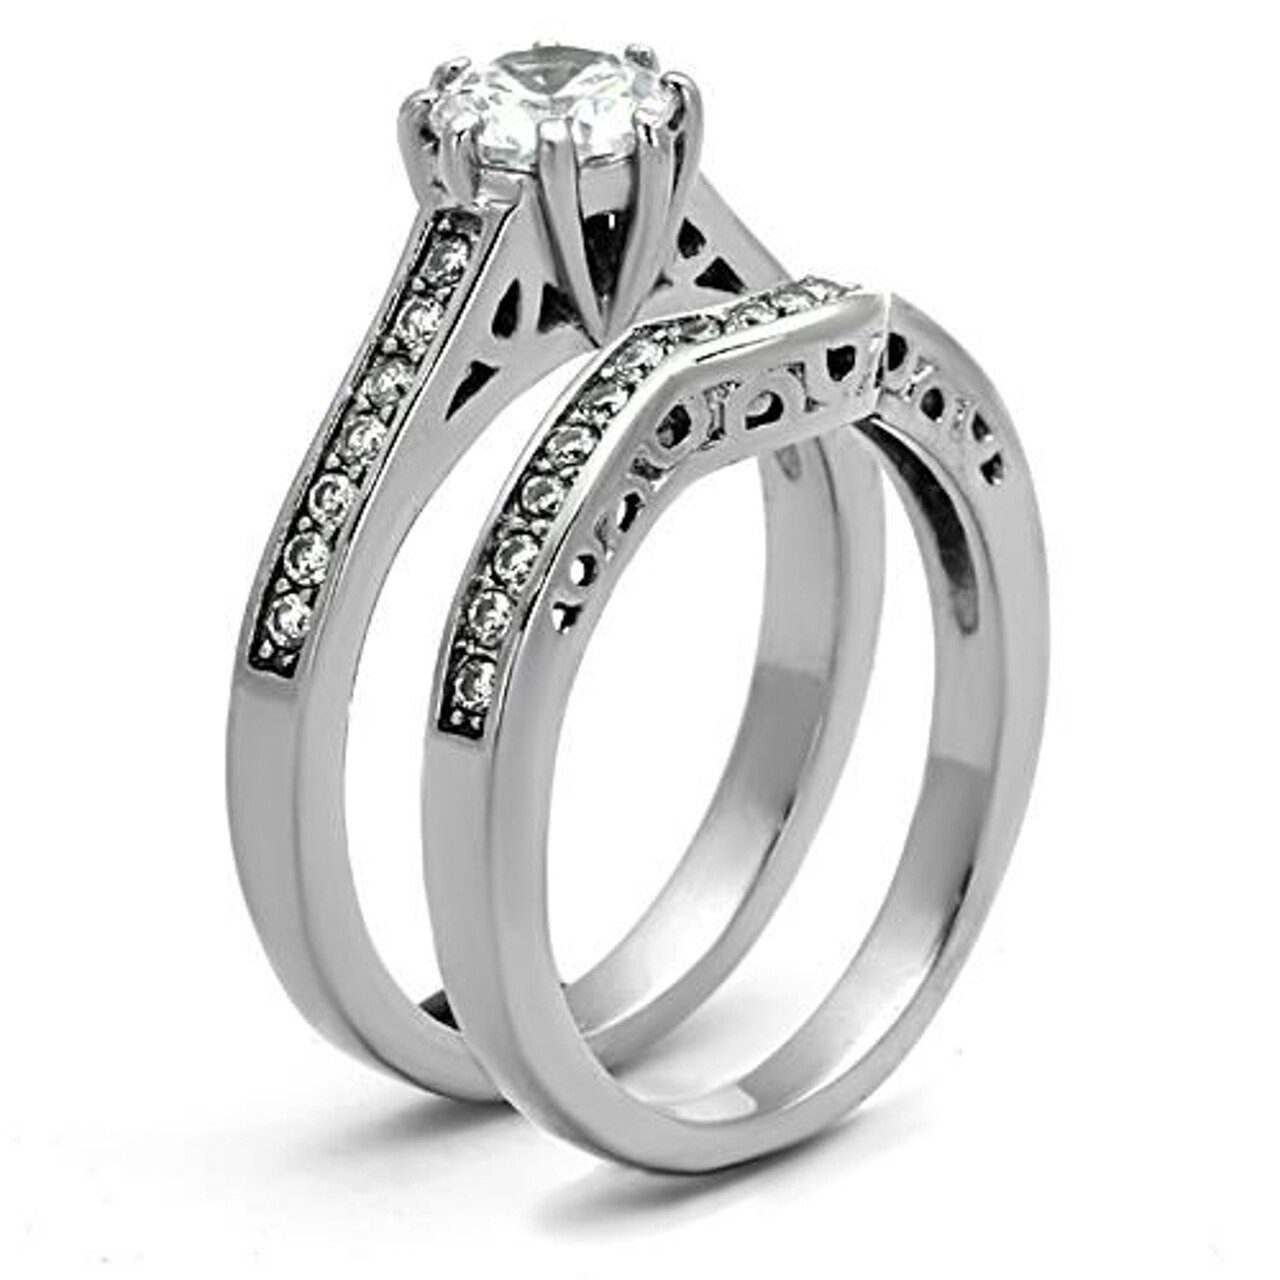 Stainless Steel Cubic Zirconia Wedding Ring Sets  ARTK1330 Stainless Steel 316l 1 85 Ct Cubic Zirconia